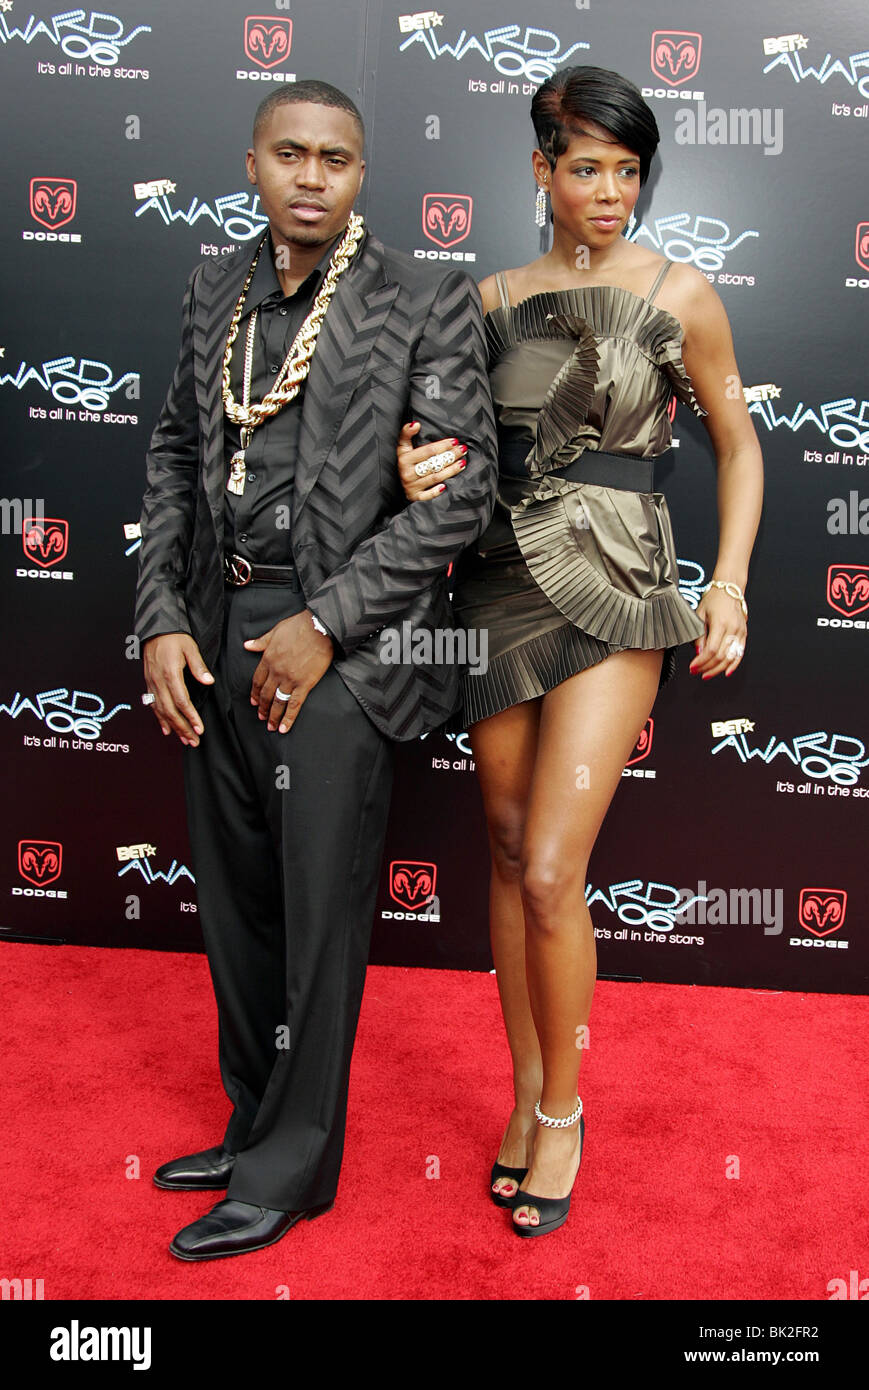 NAS & KELIS 2006 BET AWARDS SHRINE AUDITORIUM DOWNTOWN LOS ANGELES USA 27 June 2006 - Stock Image